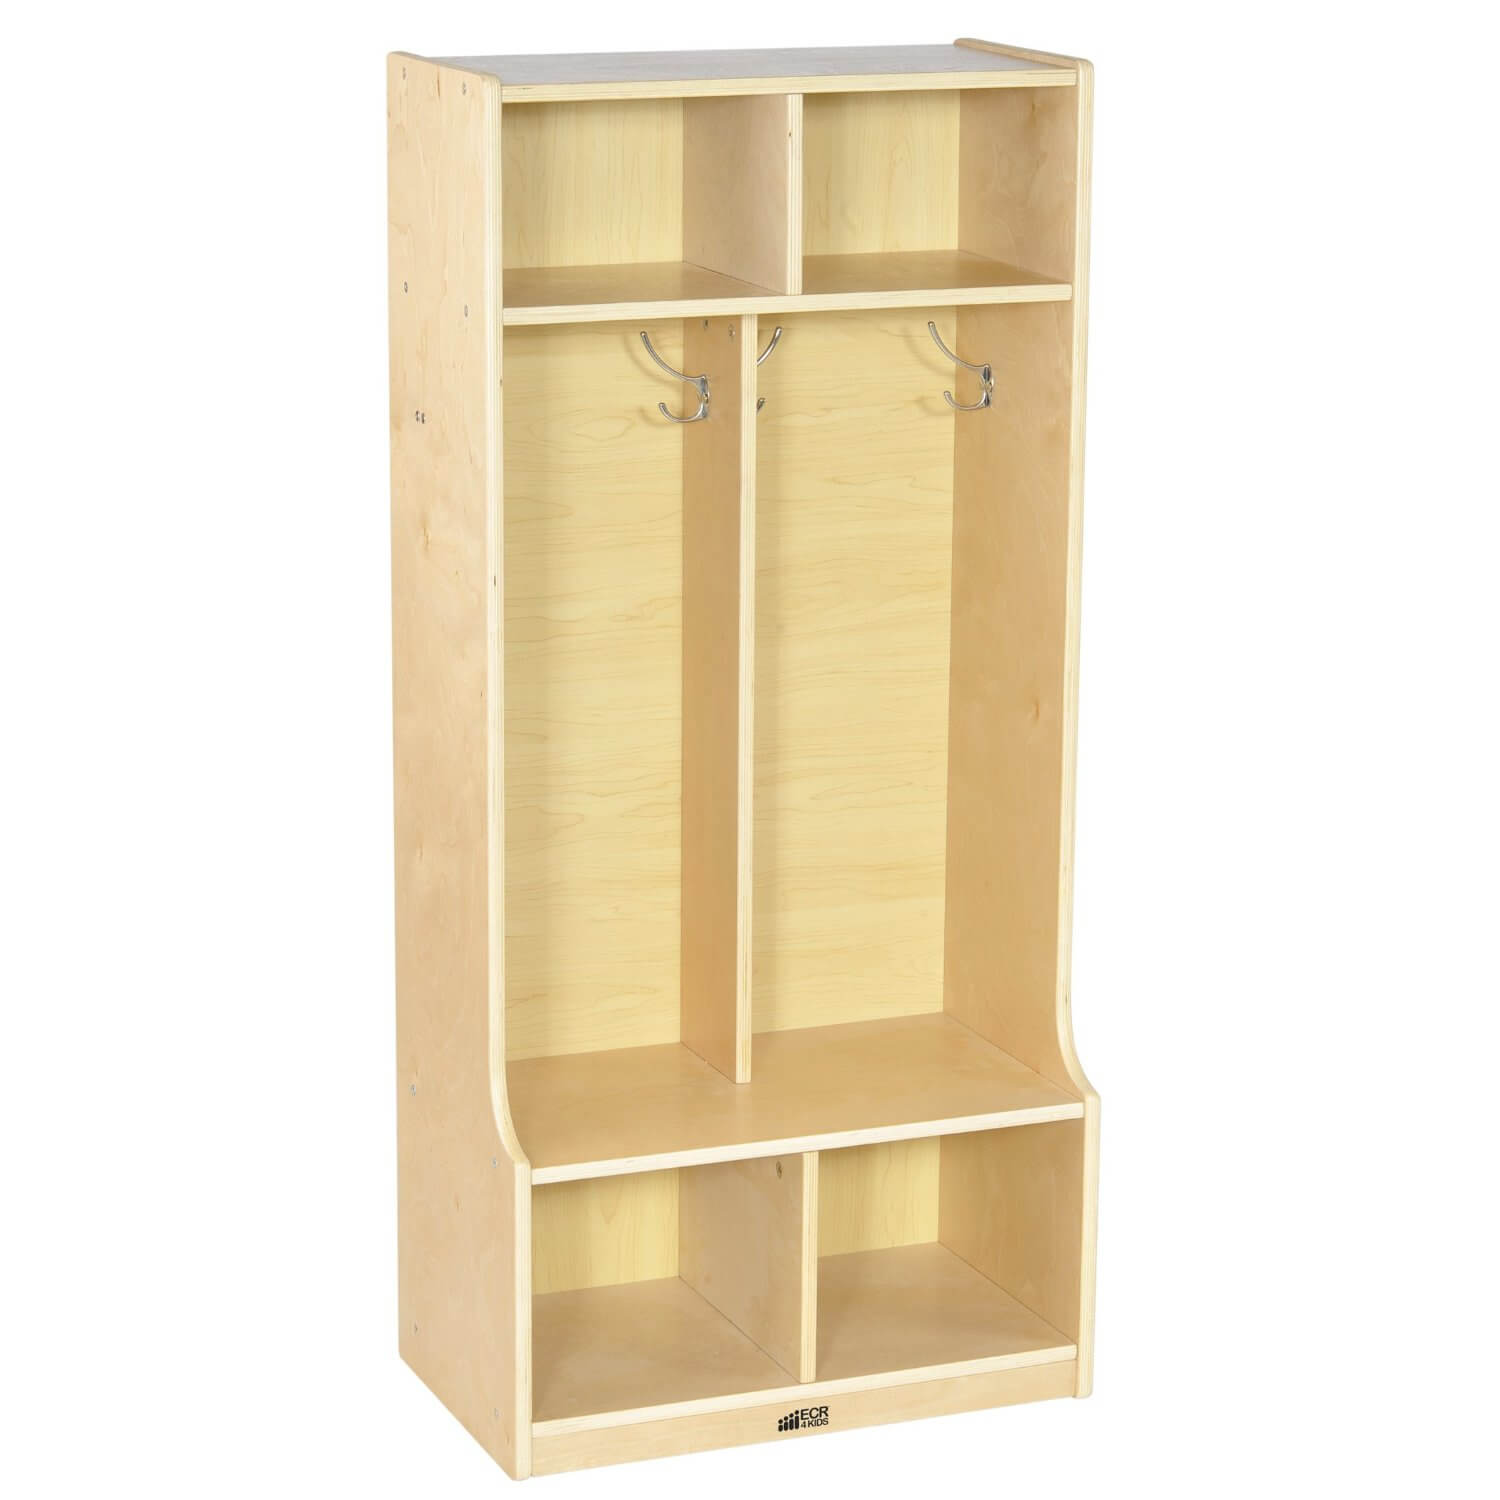 This is a basic, inexpensive, natural wood mudroom open storage unit with a small sitting bench on the bottom.